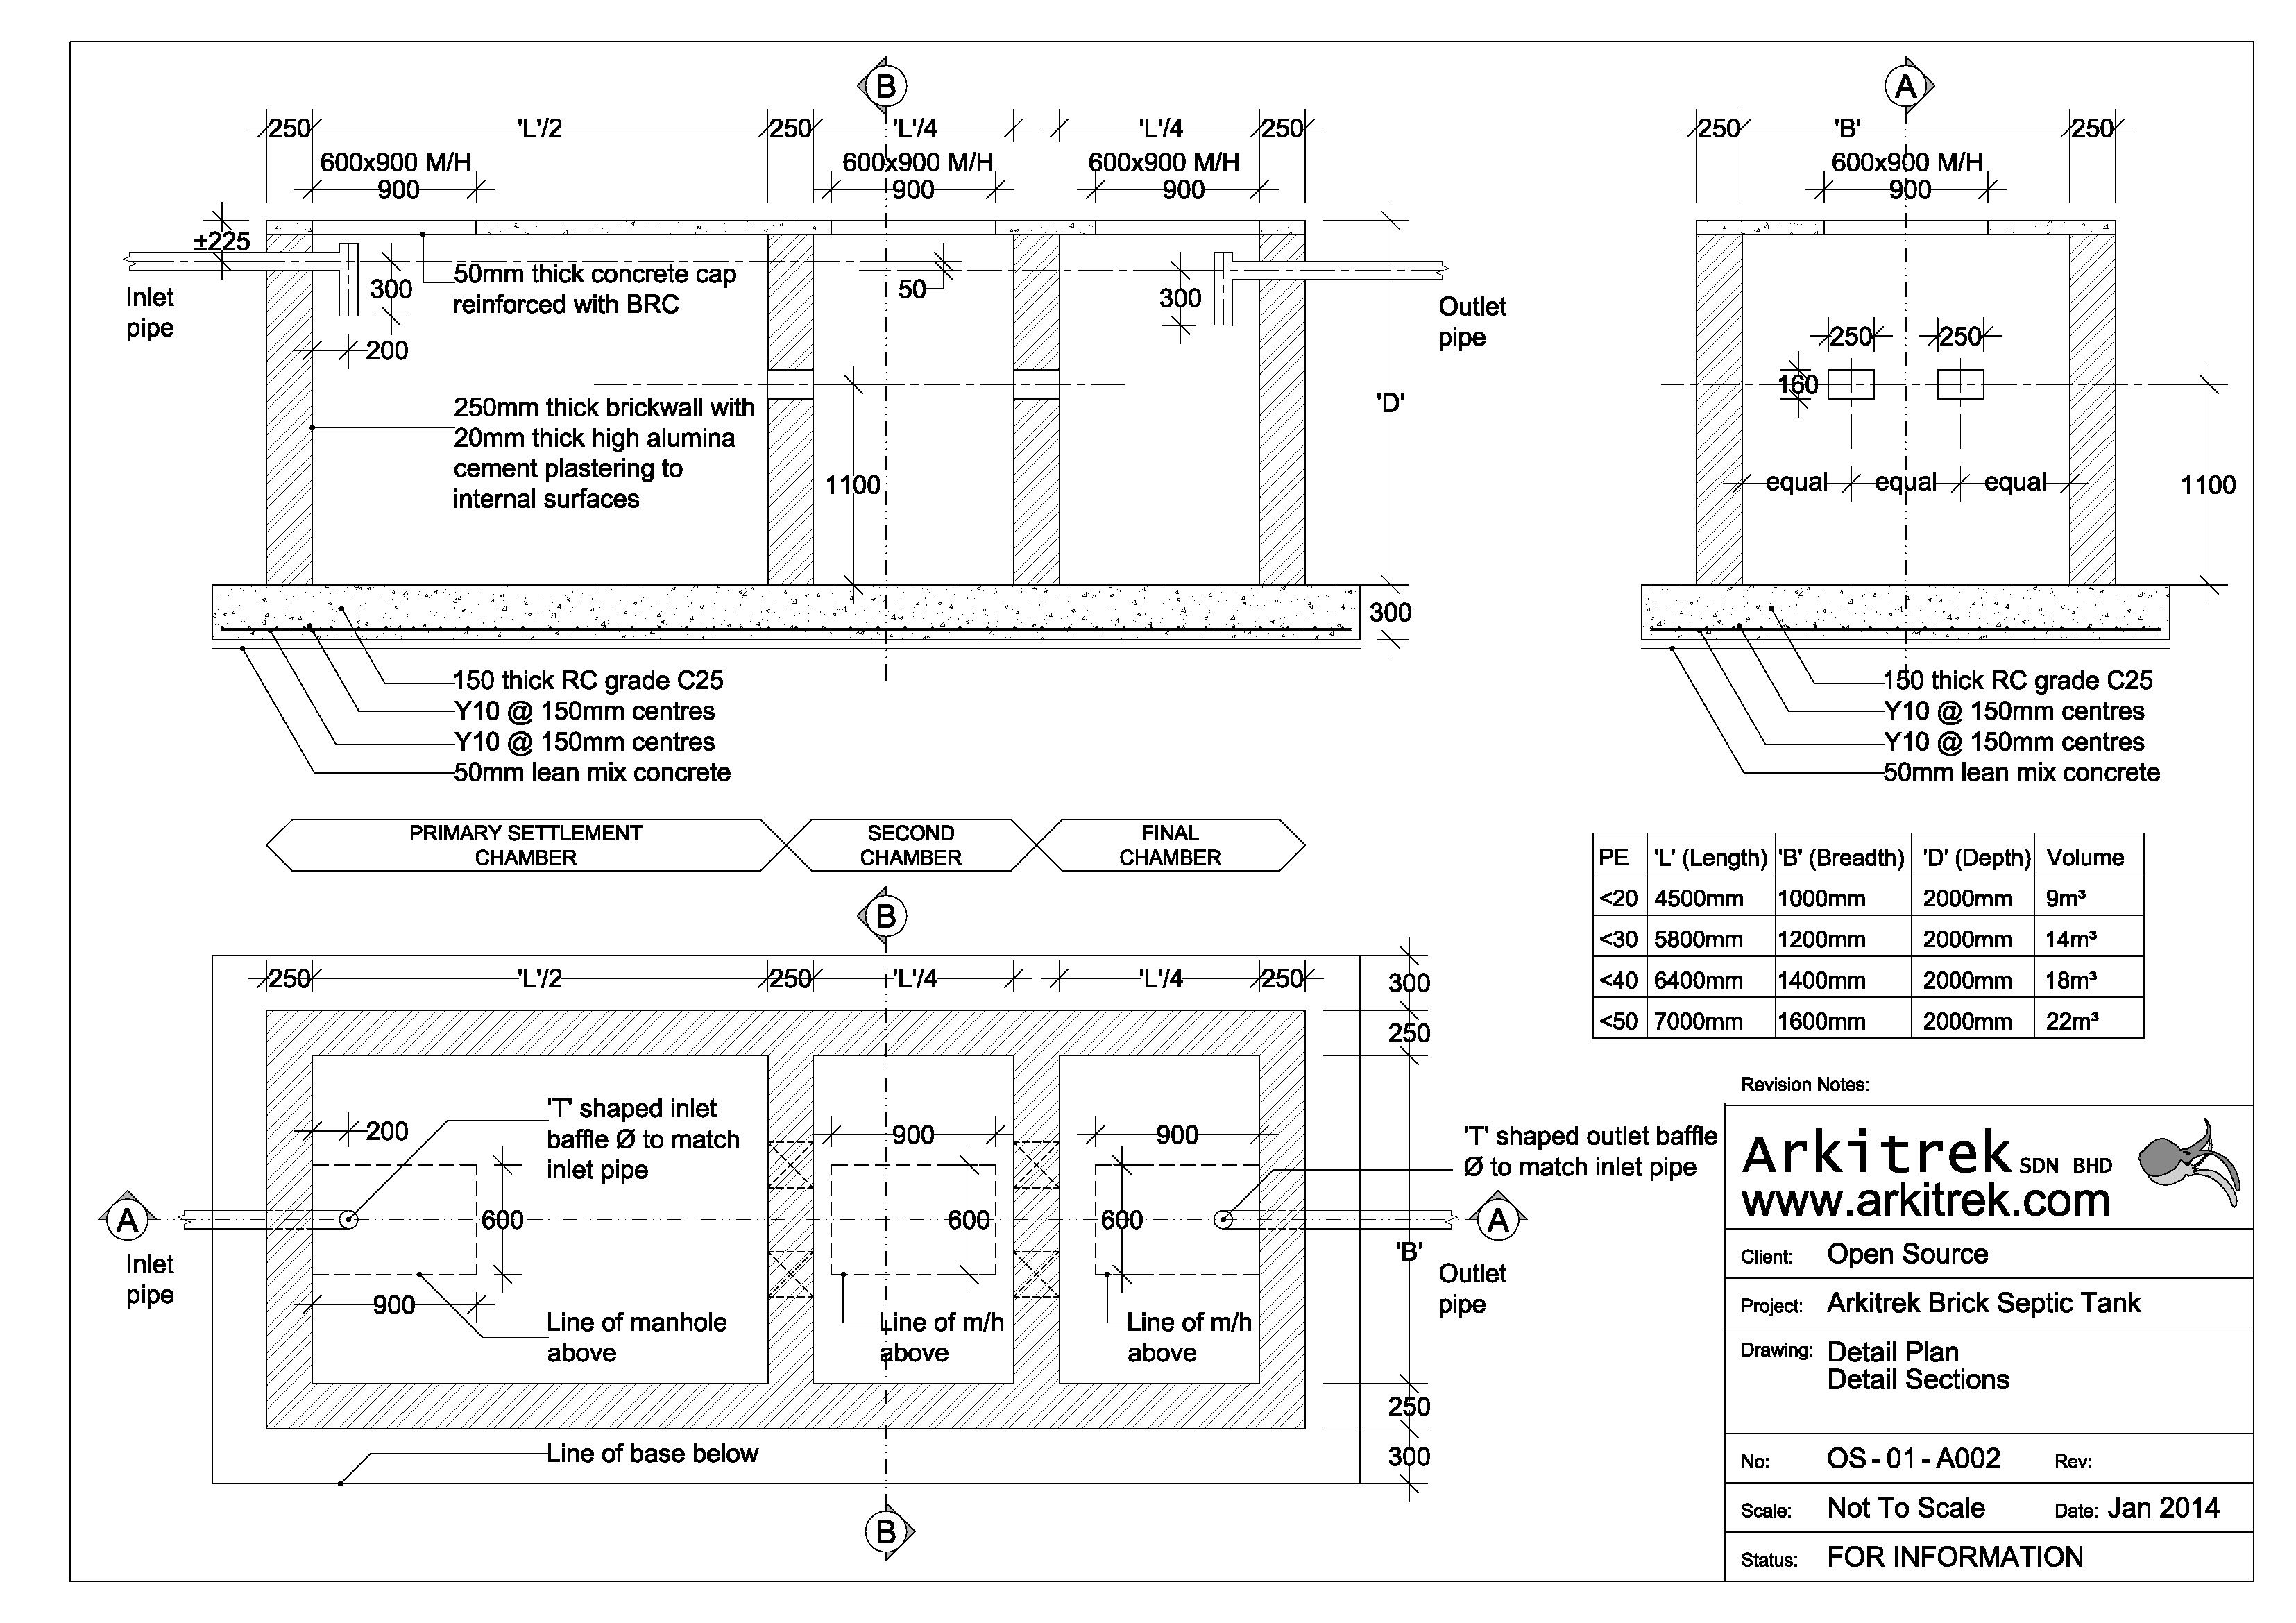 Brick septic tank arkitrek open source design drawings for How to build a septic tank